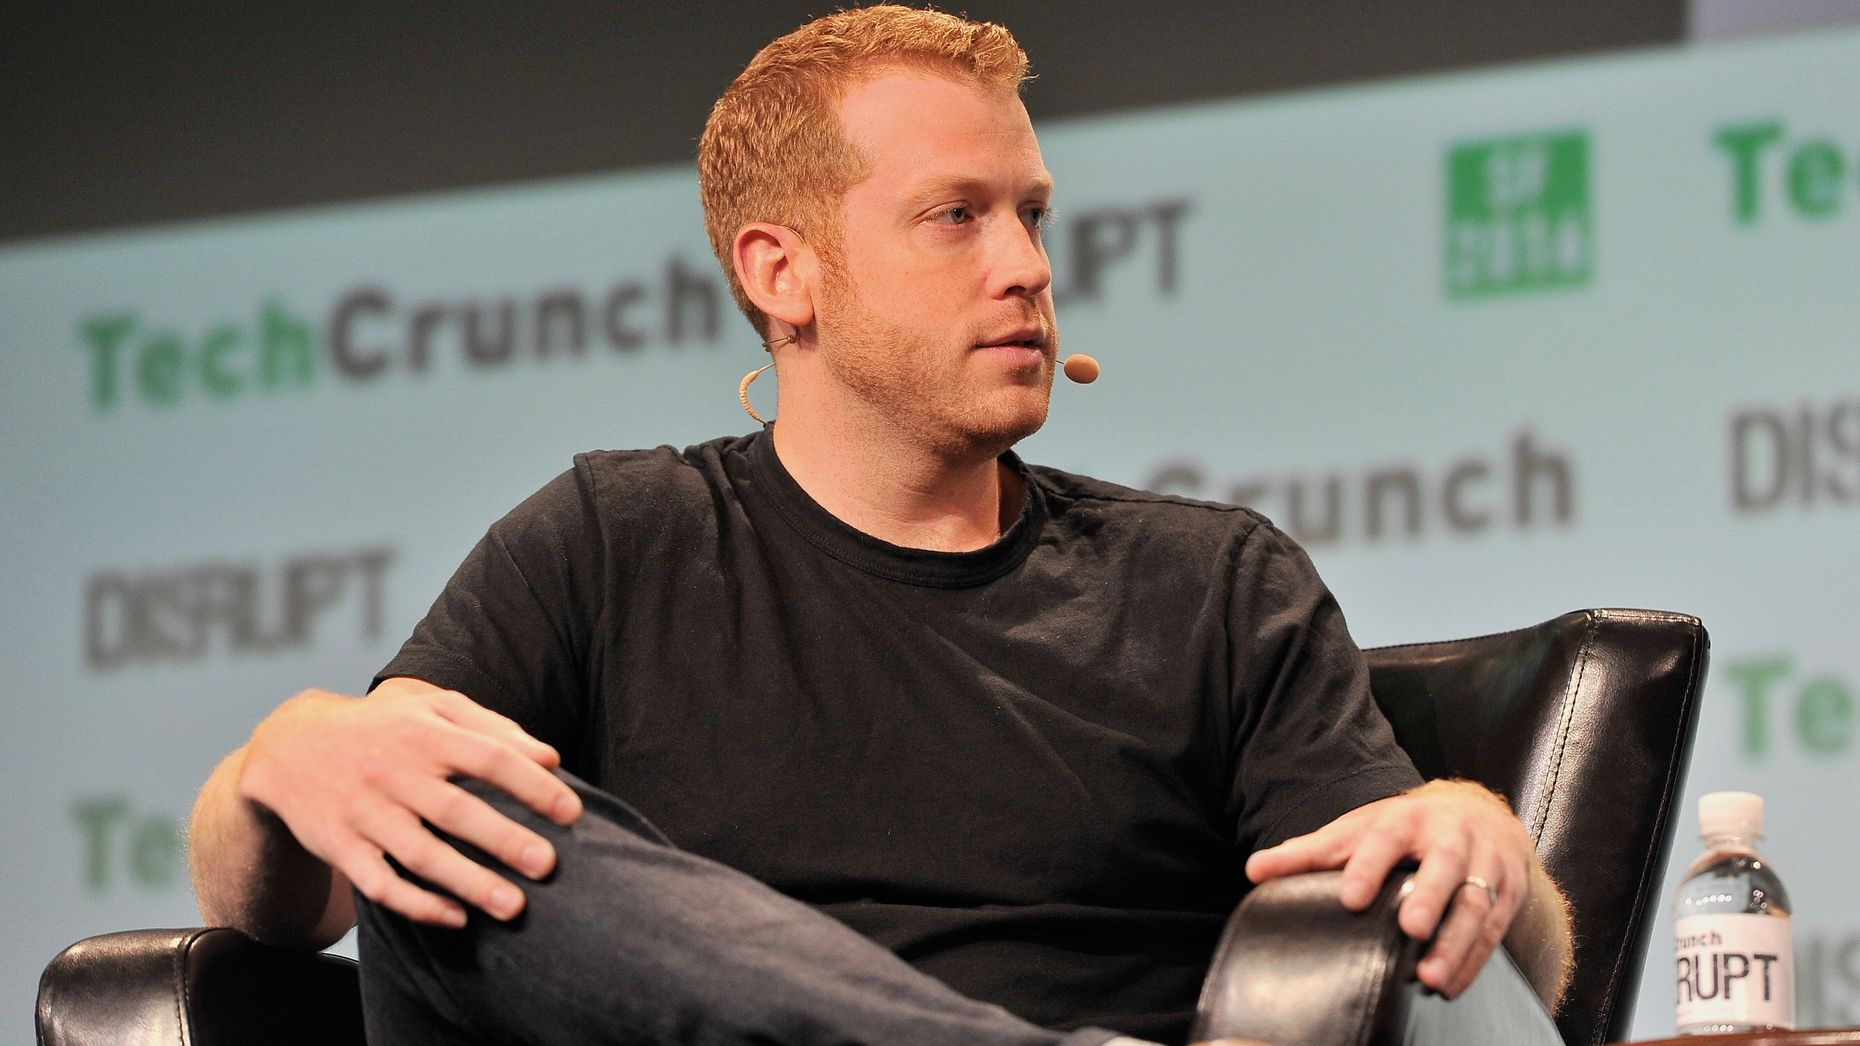 Cruise CEO Kyle Vogt. Photo by Flickr/TechCrunch.